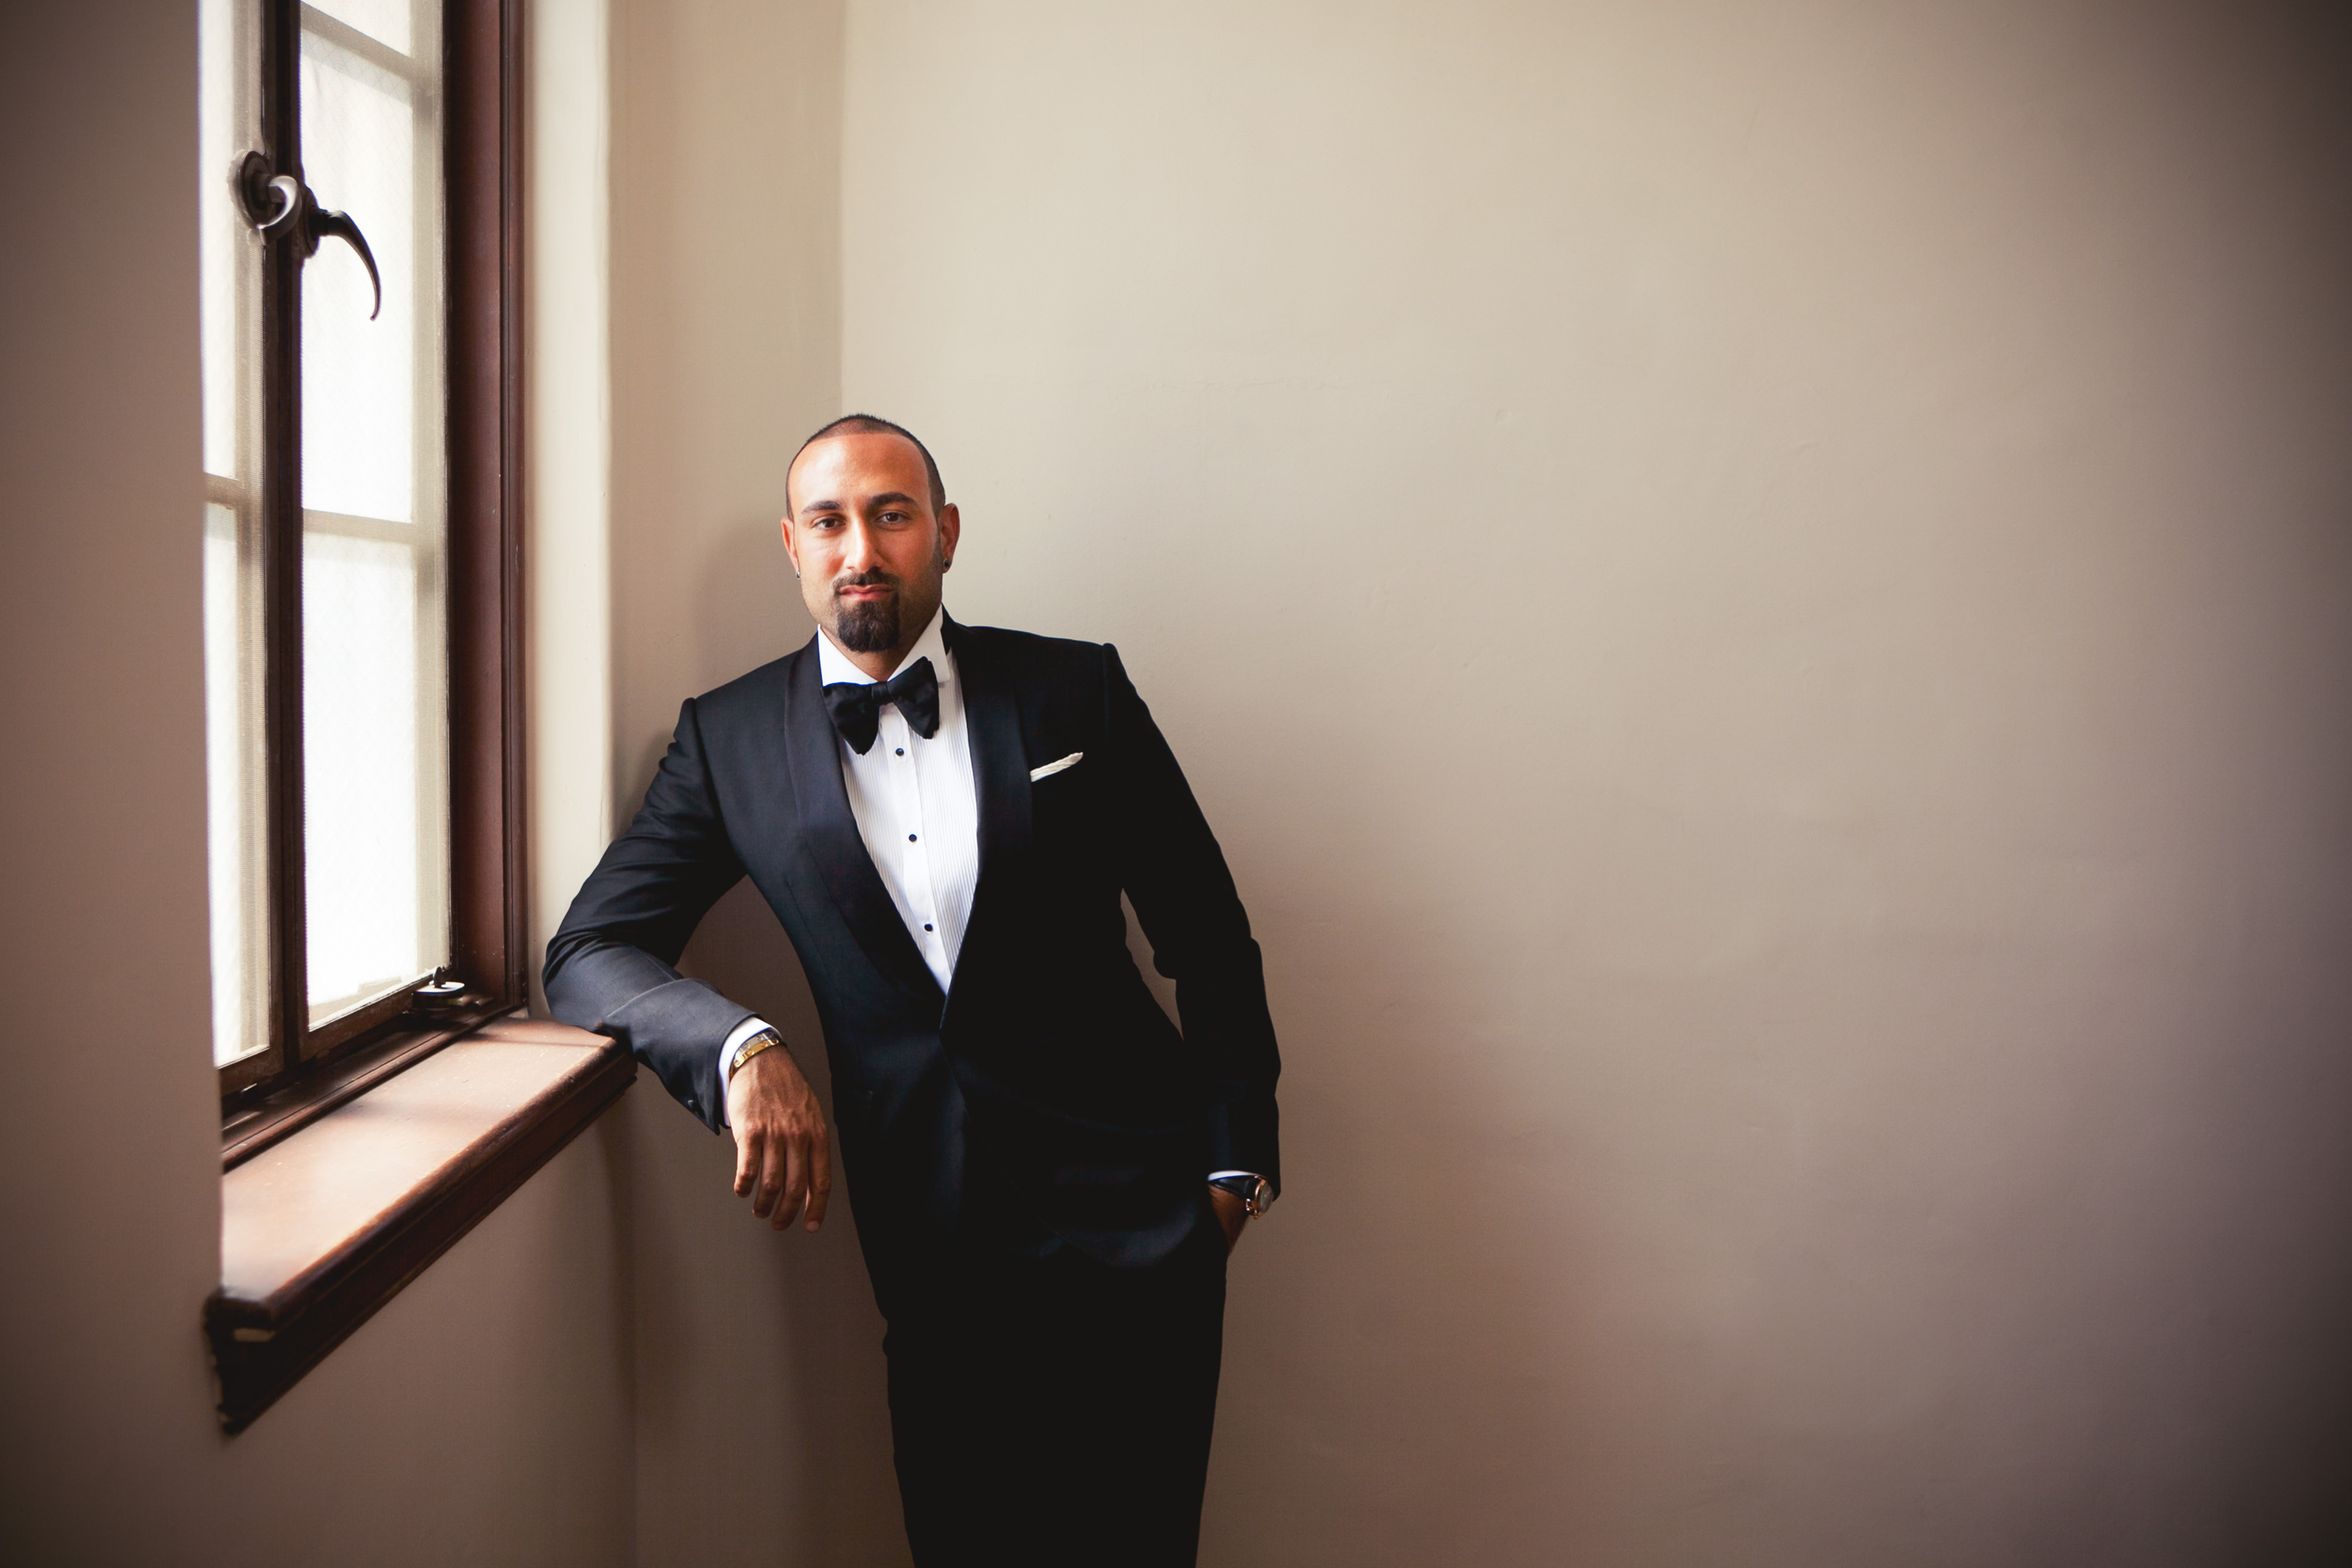 Groom standing at window - photo by Callaway Gable